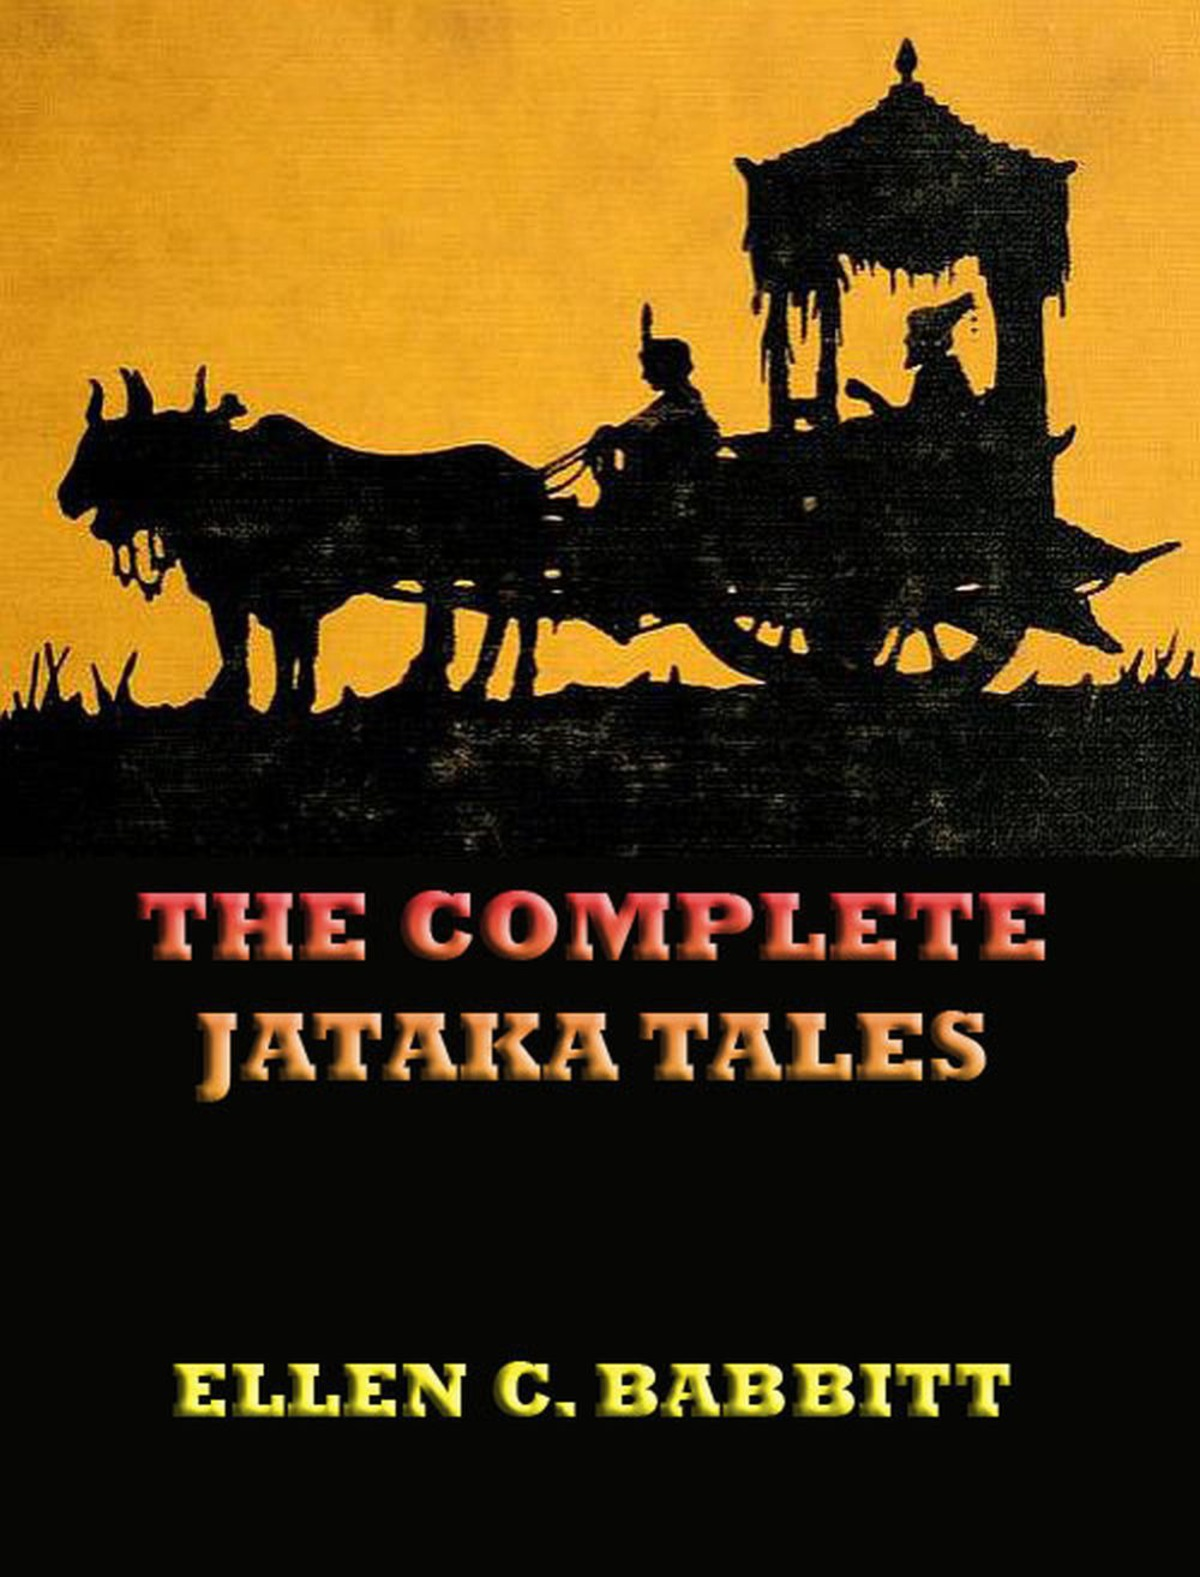 The Complete Jataka Tales: Extended Annotated Edition